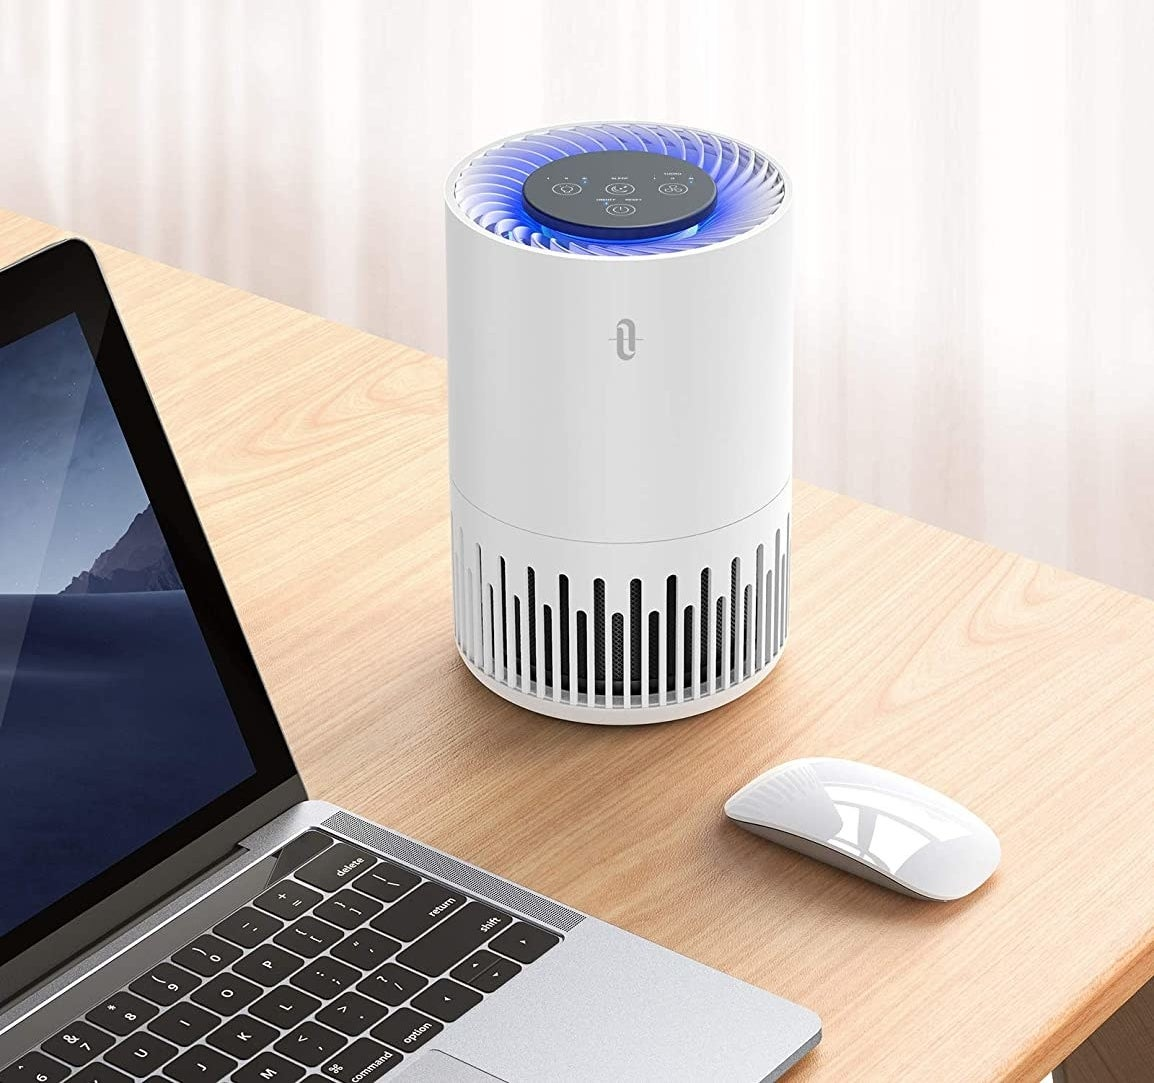 the air purifier on a table